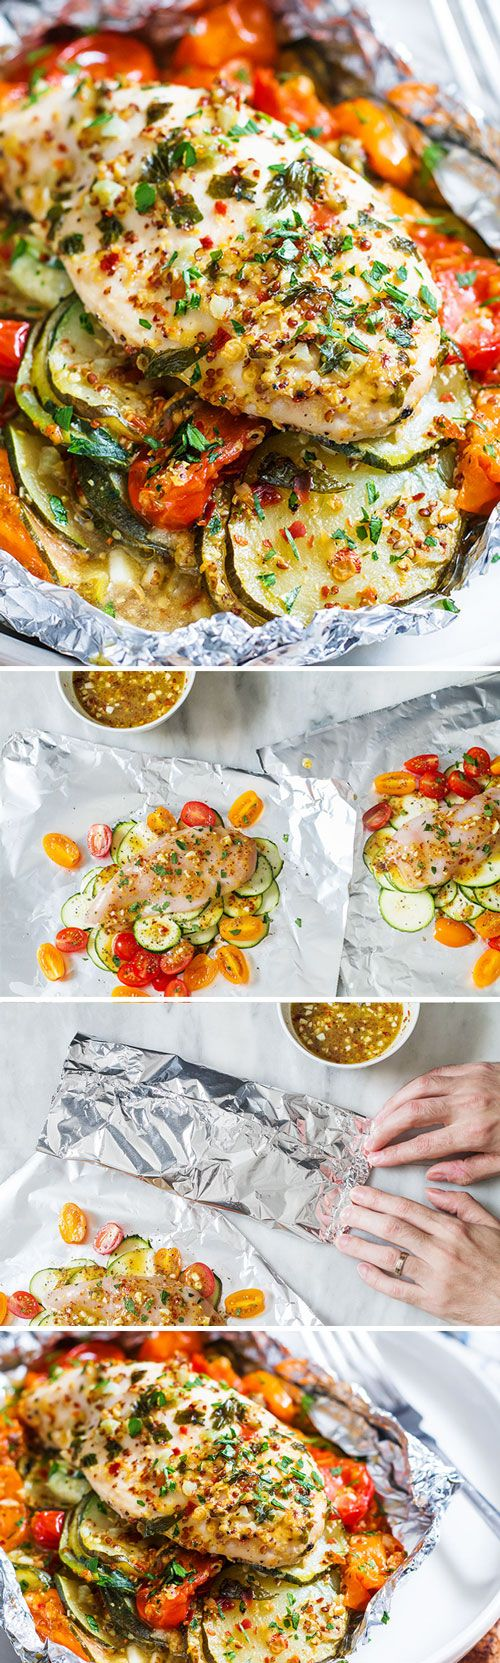 Chicken foil packets for the oven - a savory and nourishing dish, perfect for a quick and healthy dinner.